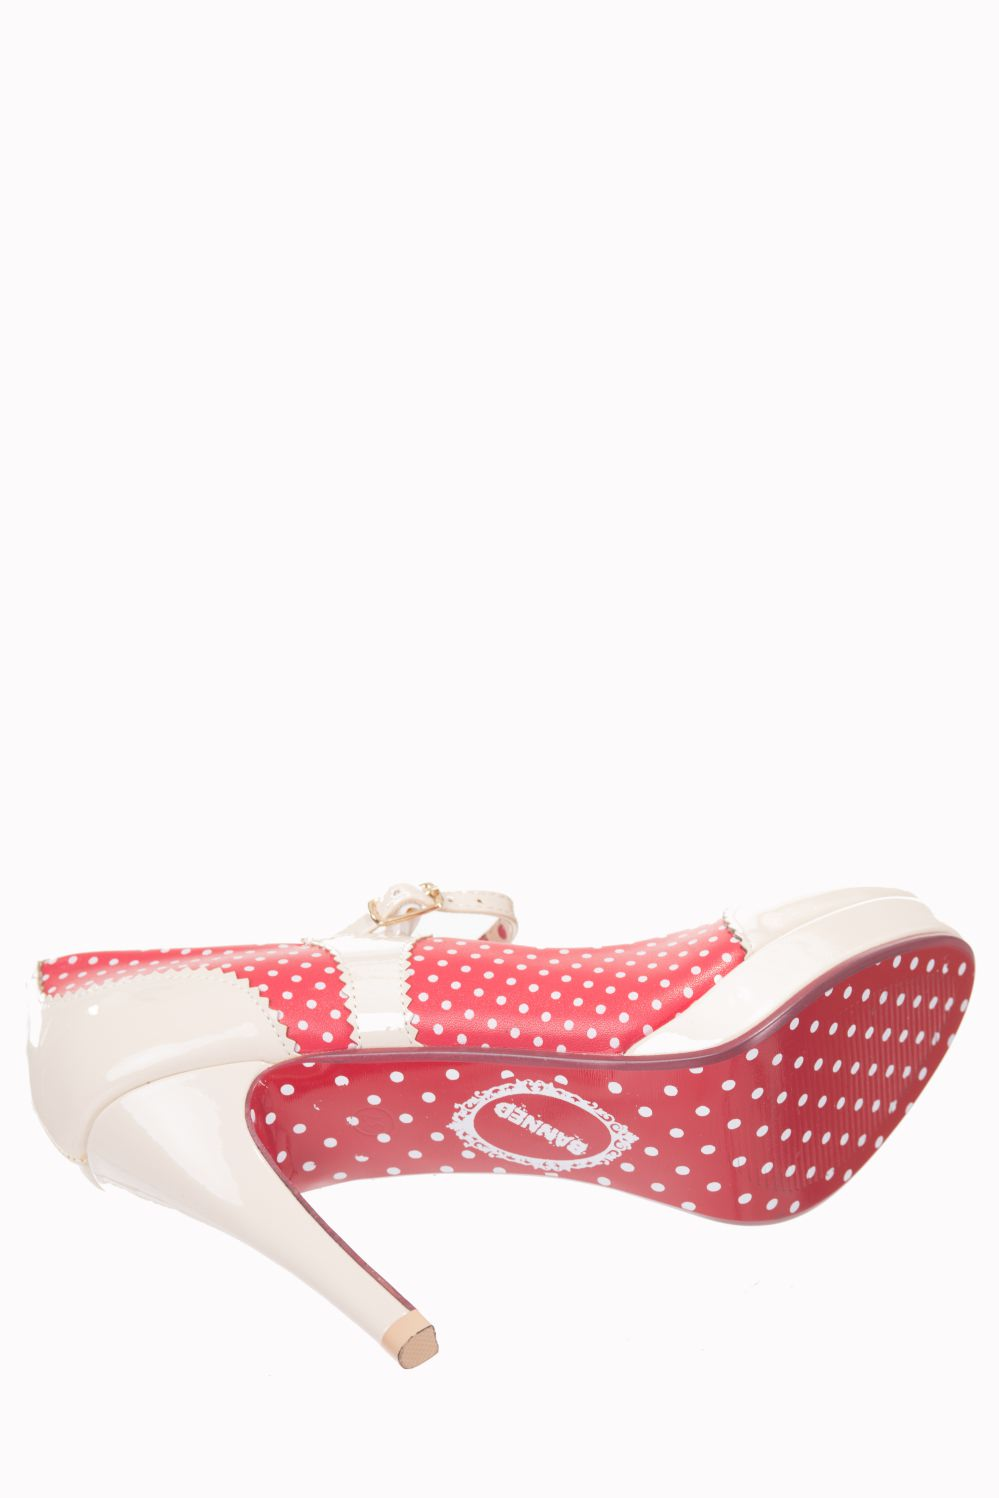 Dancing Days Mary Jane Red Nude 50s Polka Dot Shoes